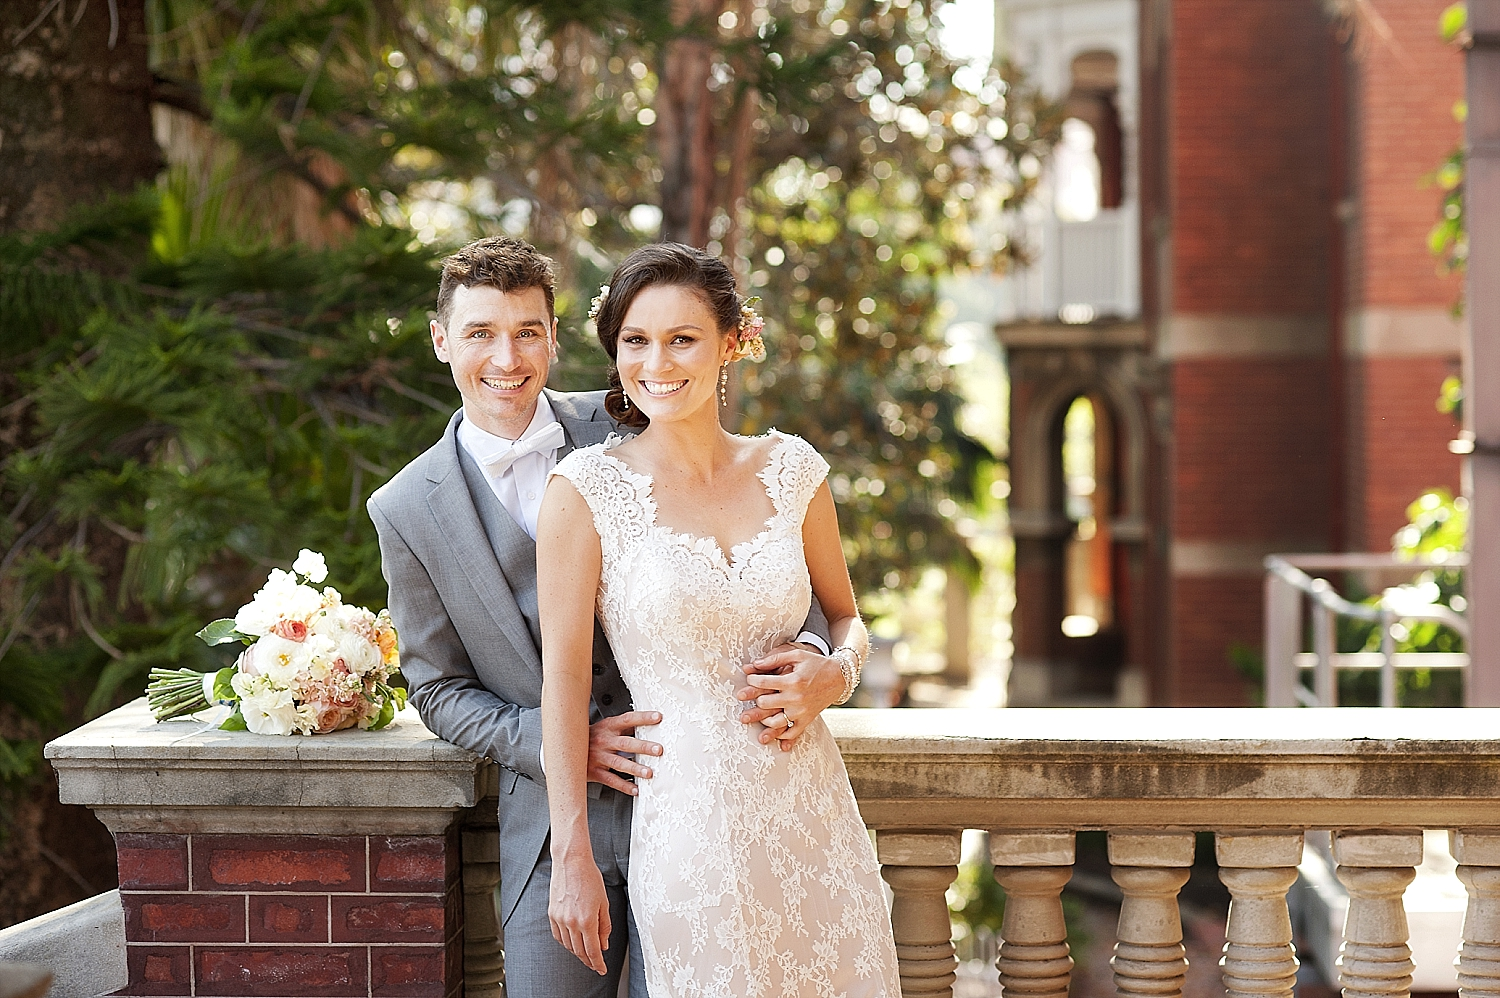 35 relaxed wedding photography perth 042.jpg